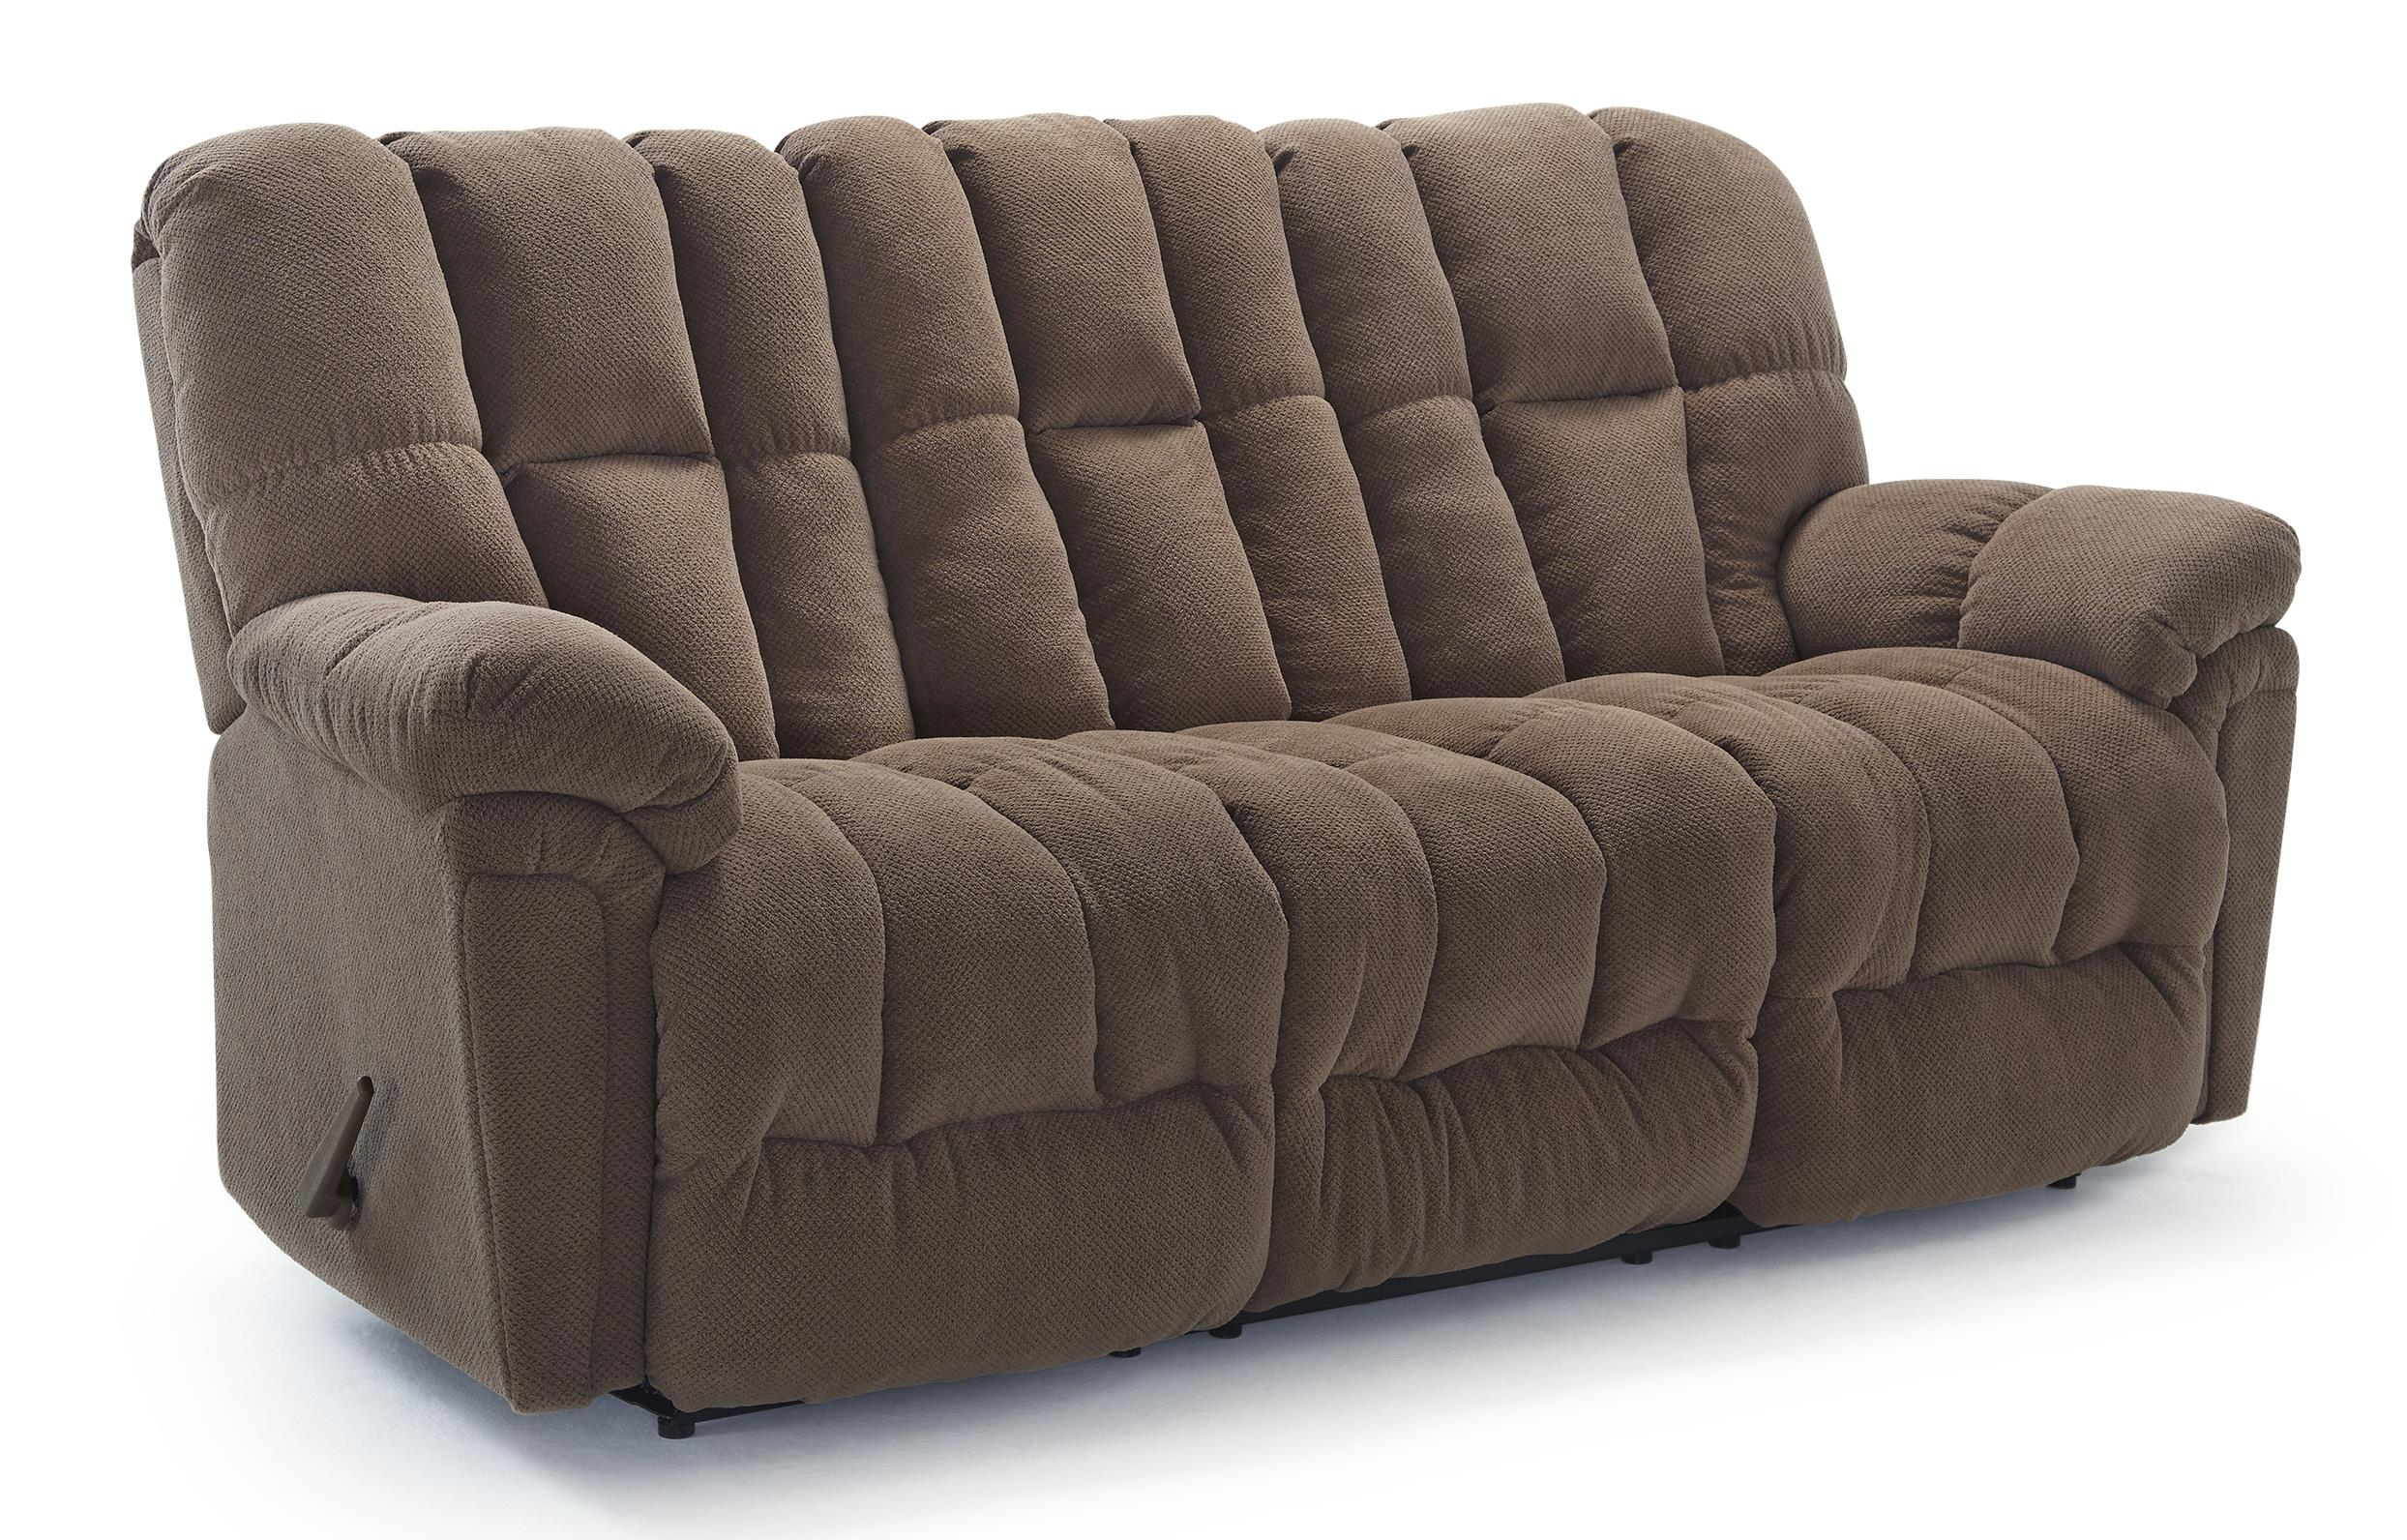 Casual Plush Power Reclining Sofa With Full Coverage Chaise Legrest